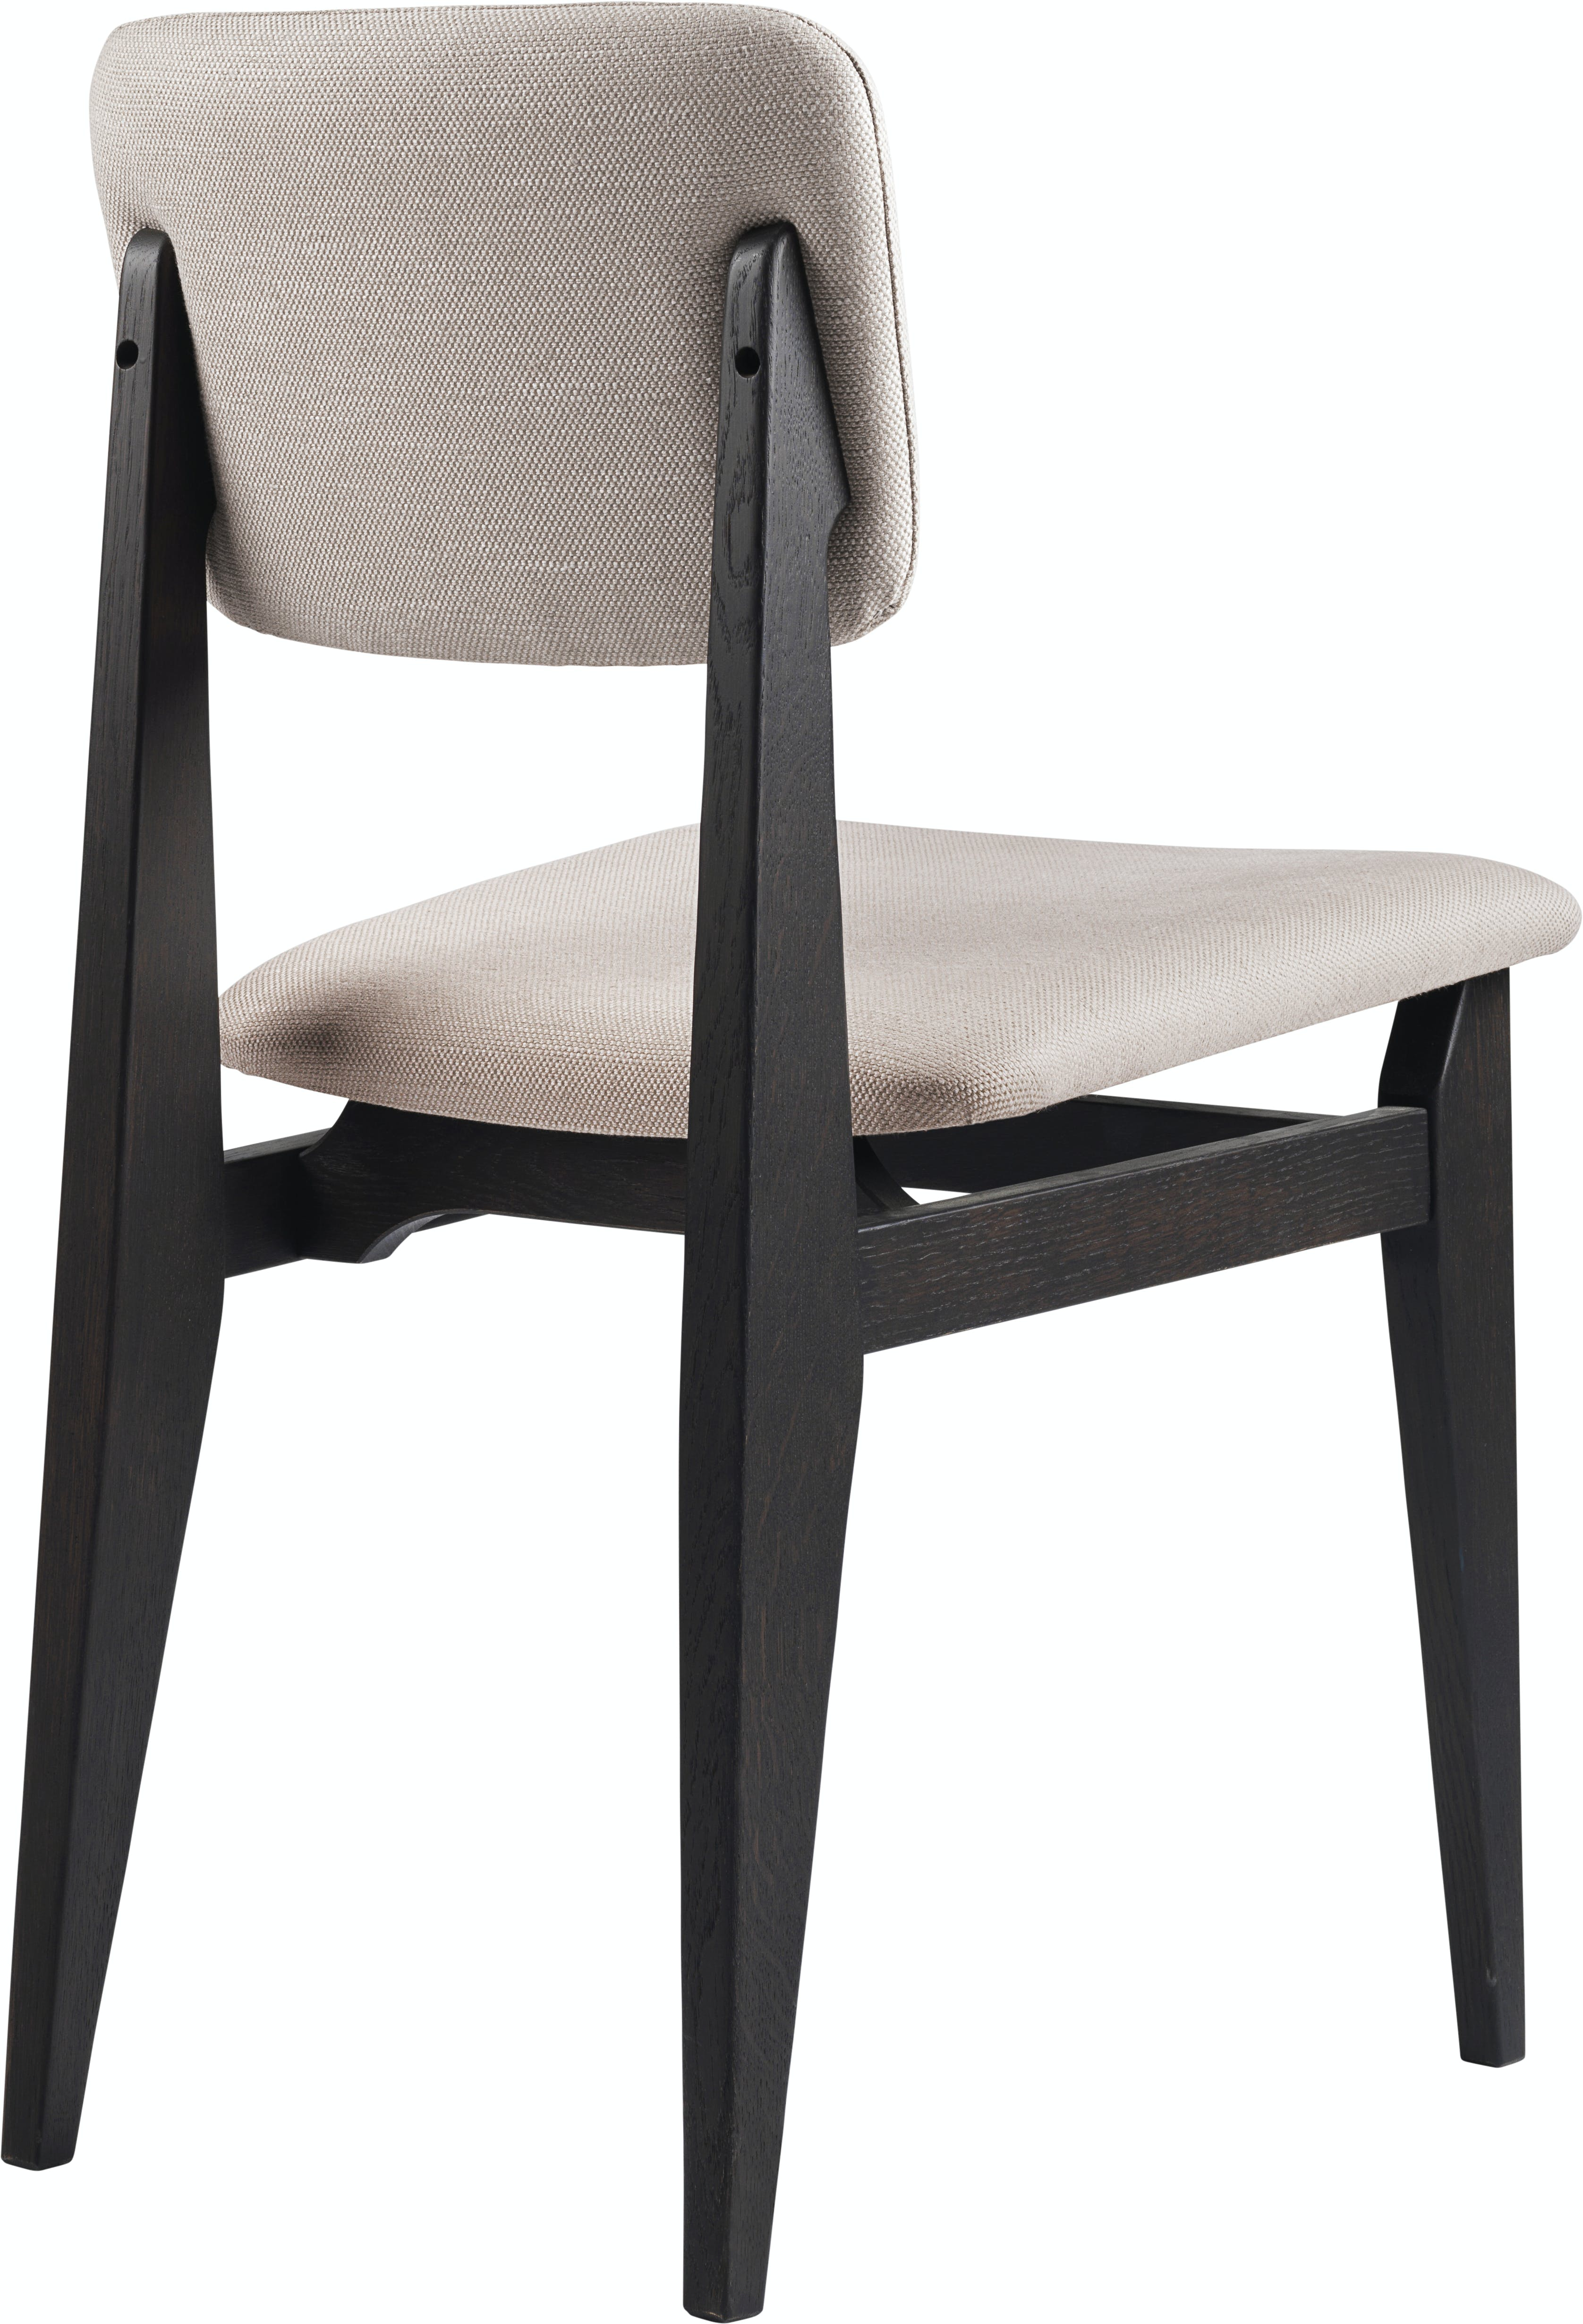 C Chair Dining Chair Wood Fully Upholstered Brown Black Stained Oak Dedar Sinequanon 030 Ficelle B3 Q